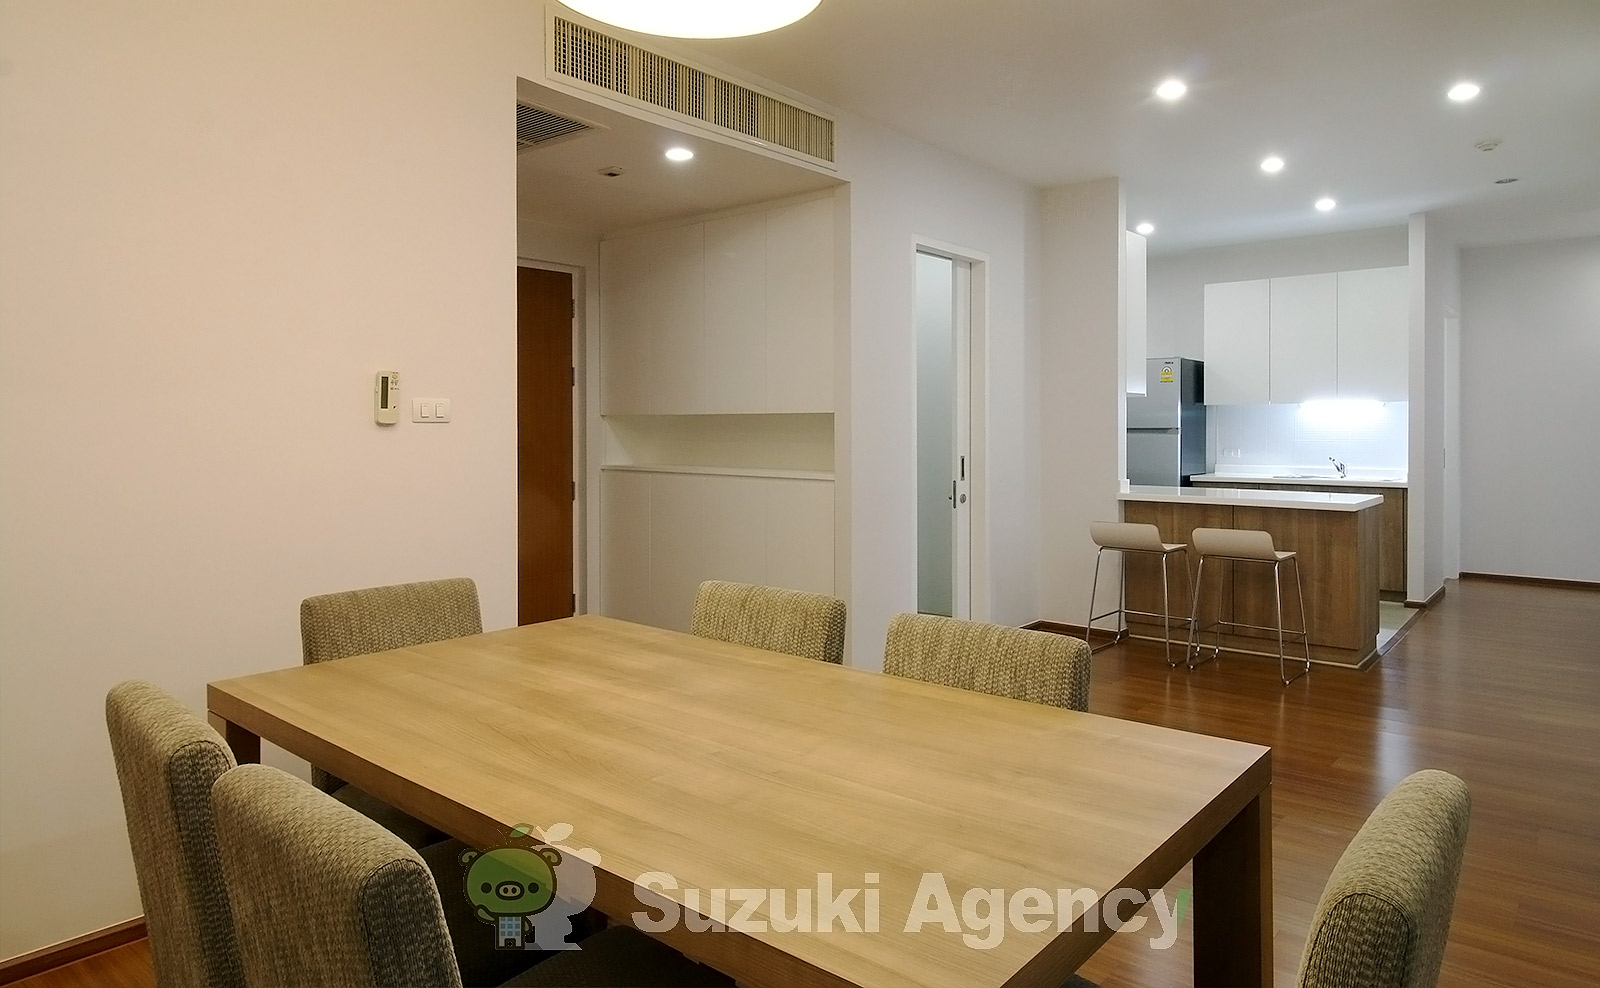 Thonglor 11 Residence:3Bed Room Photos No.5